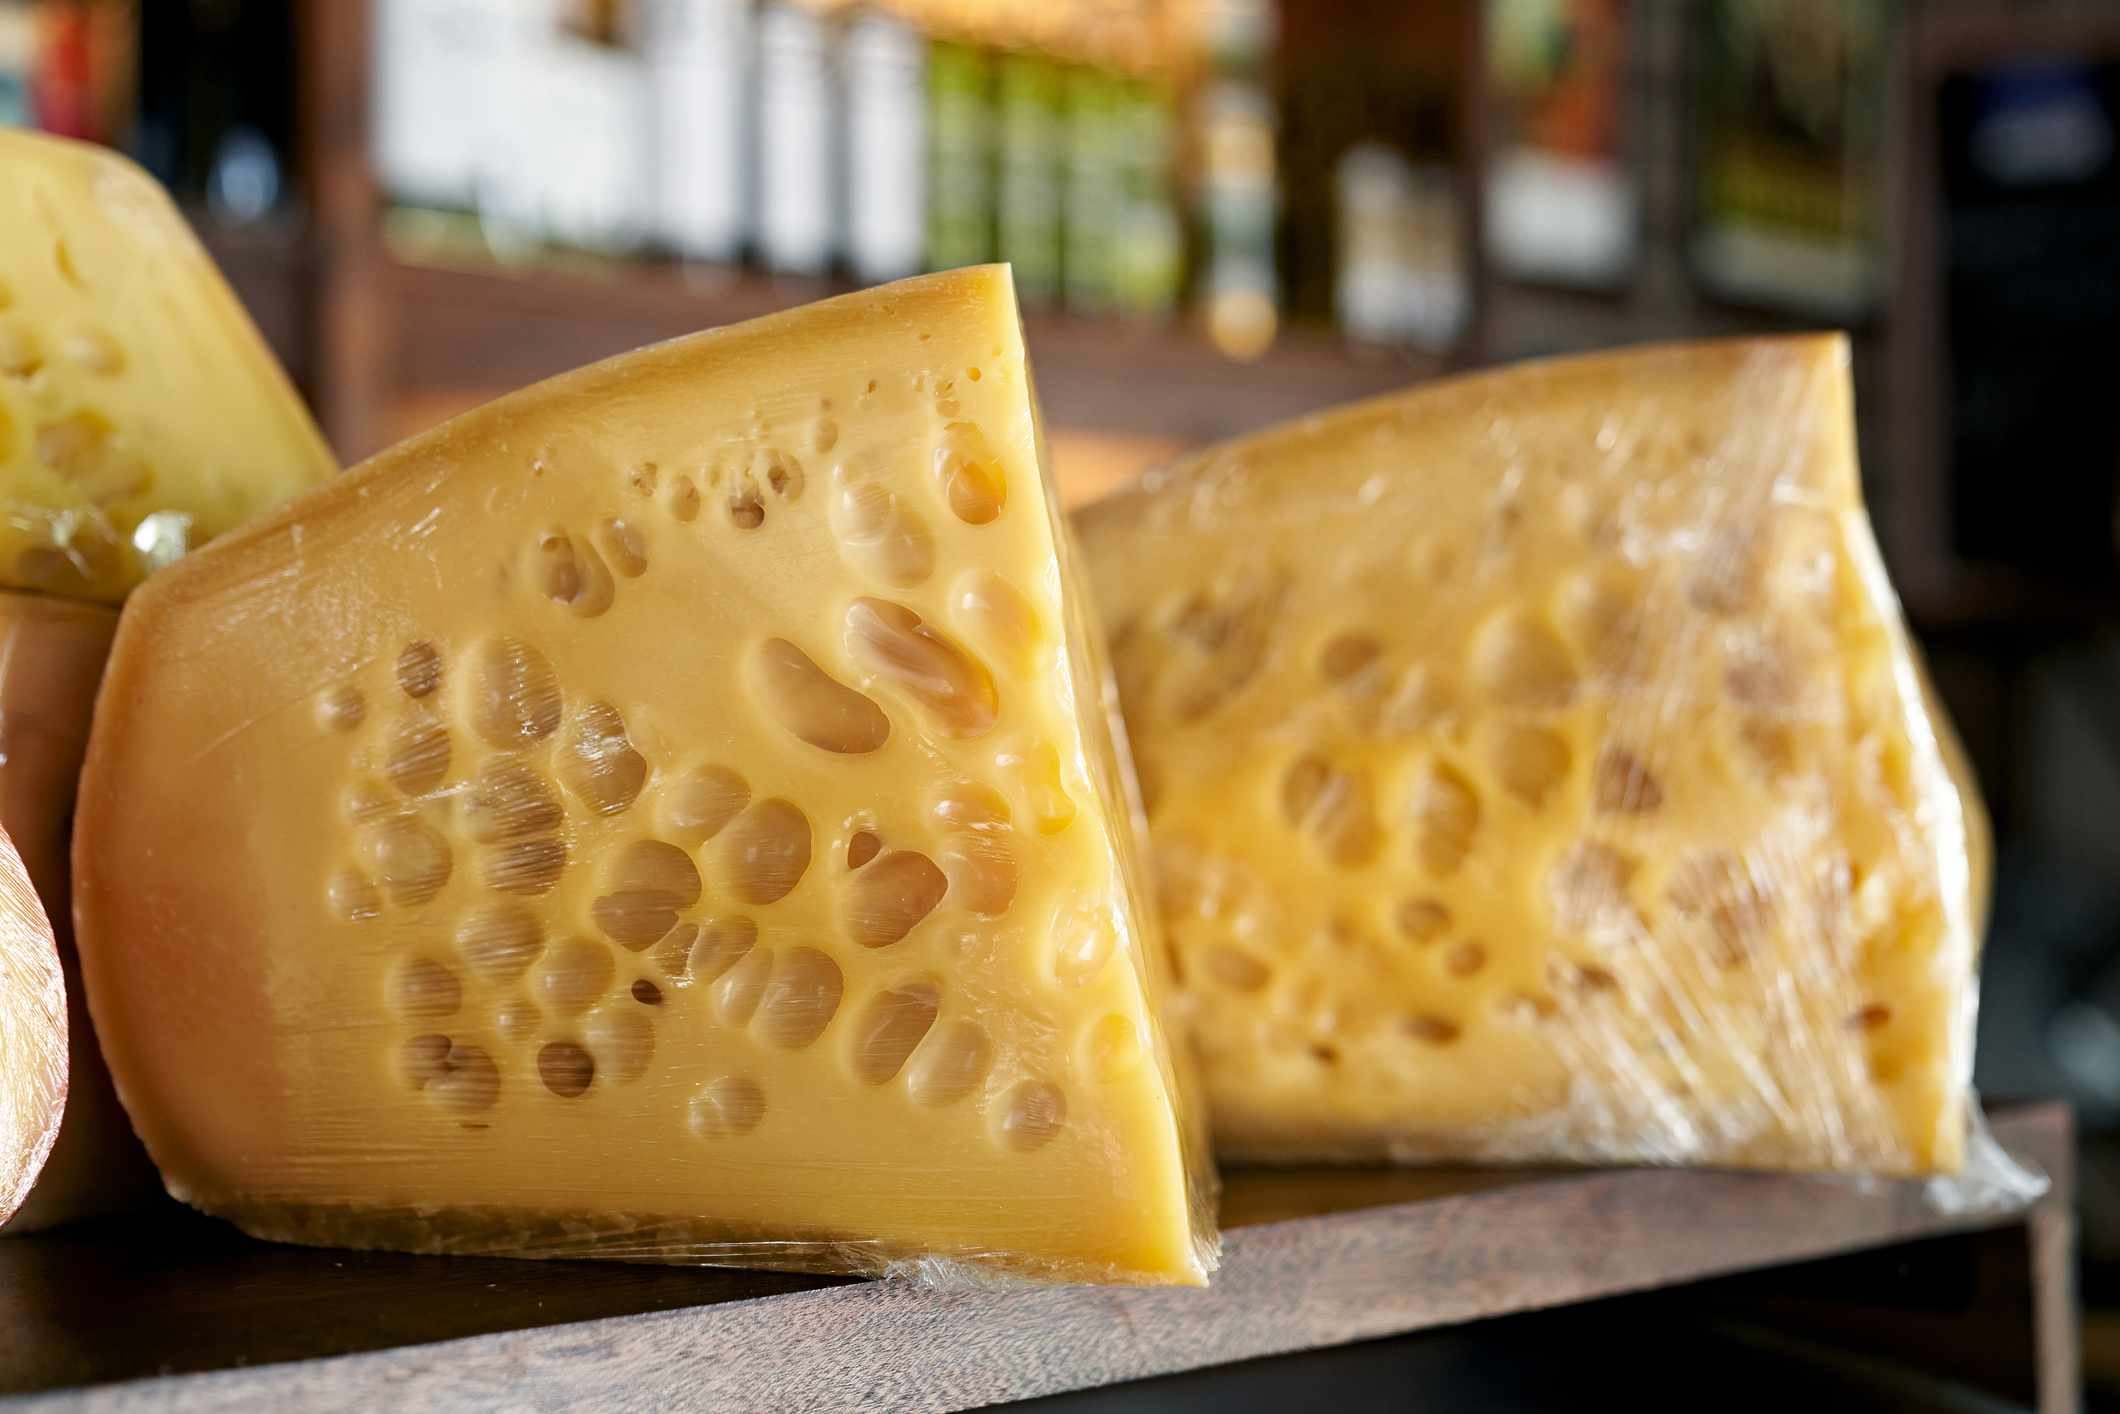 Swiss cheese for sale in a gourmet shop